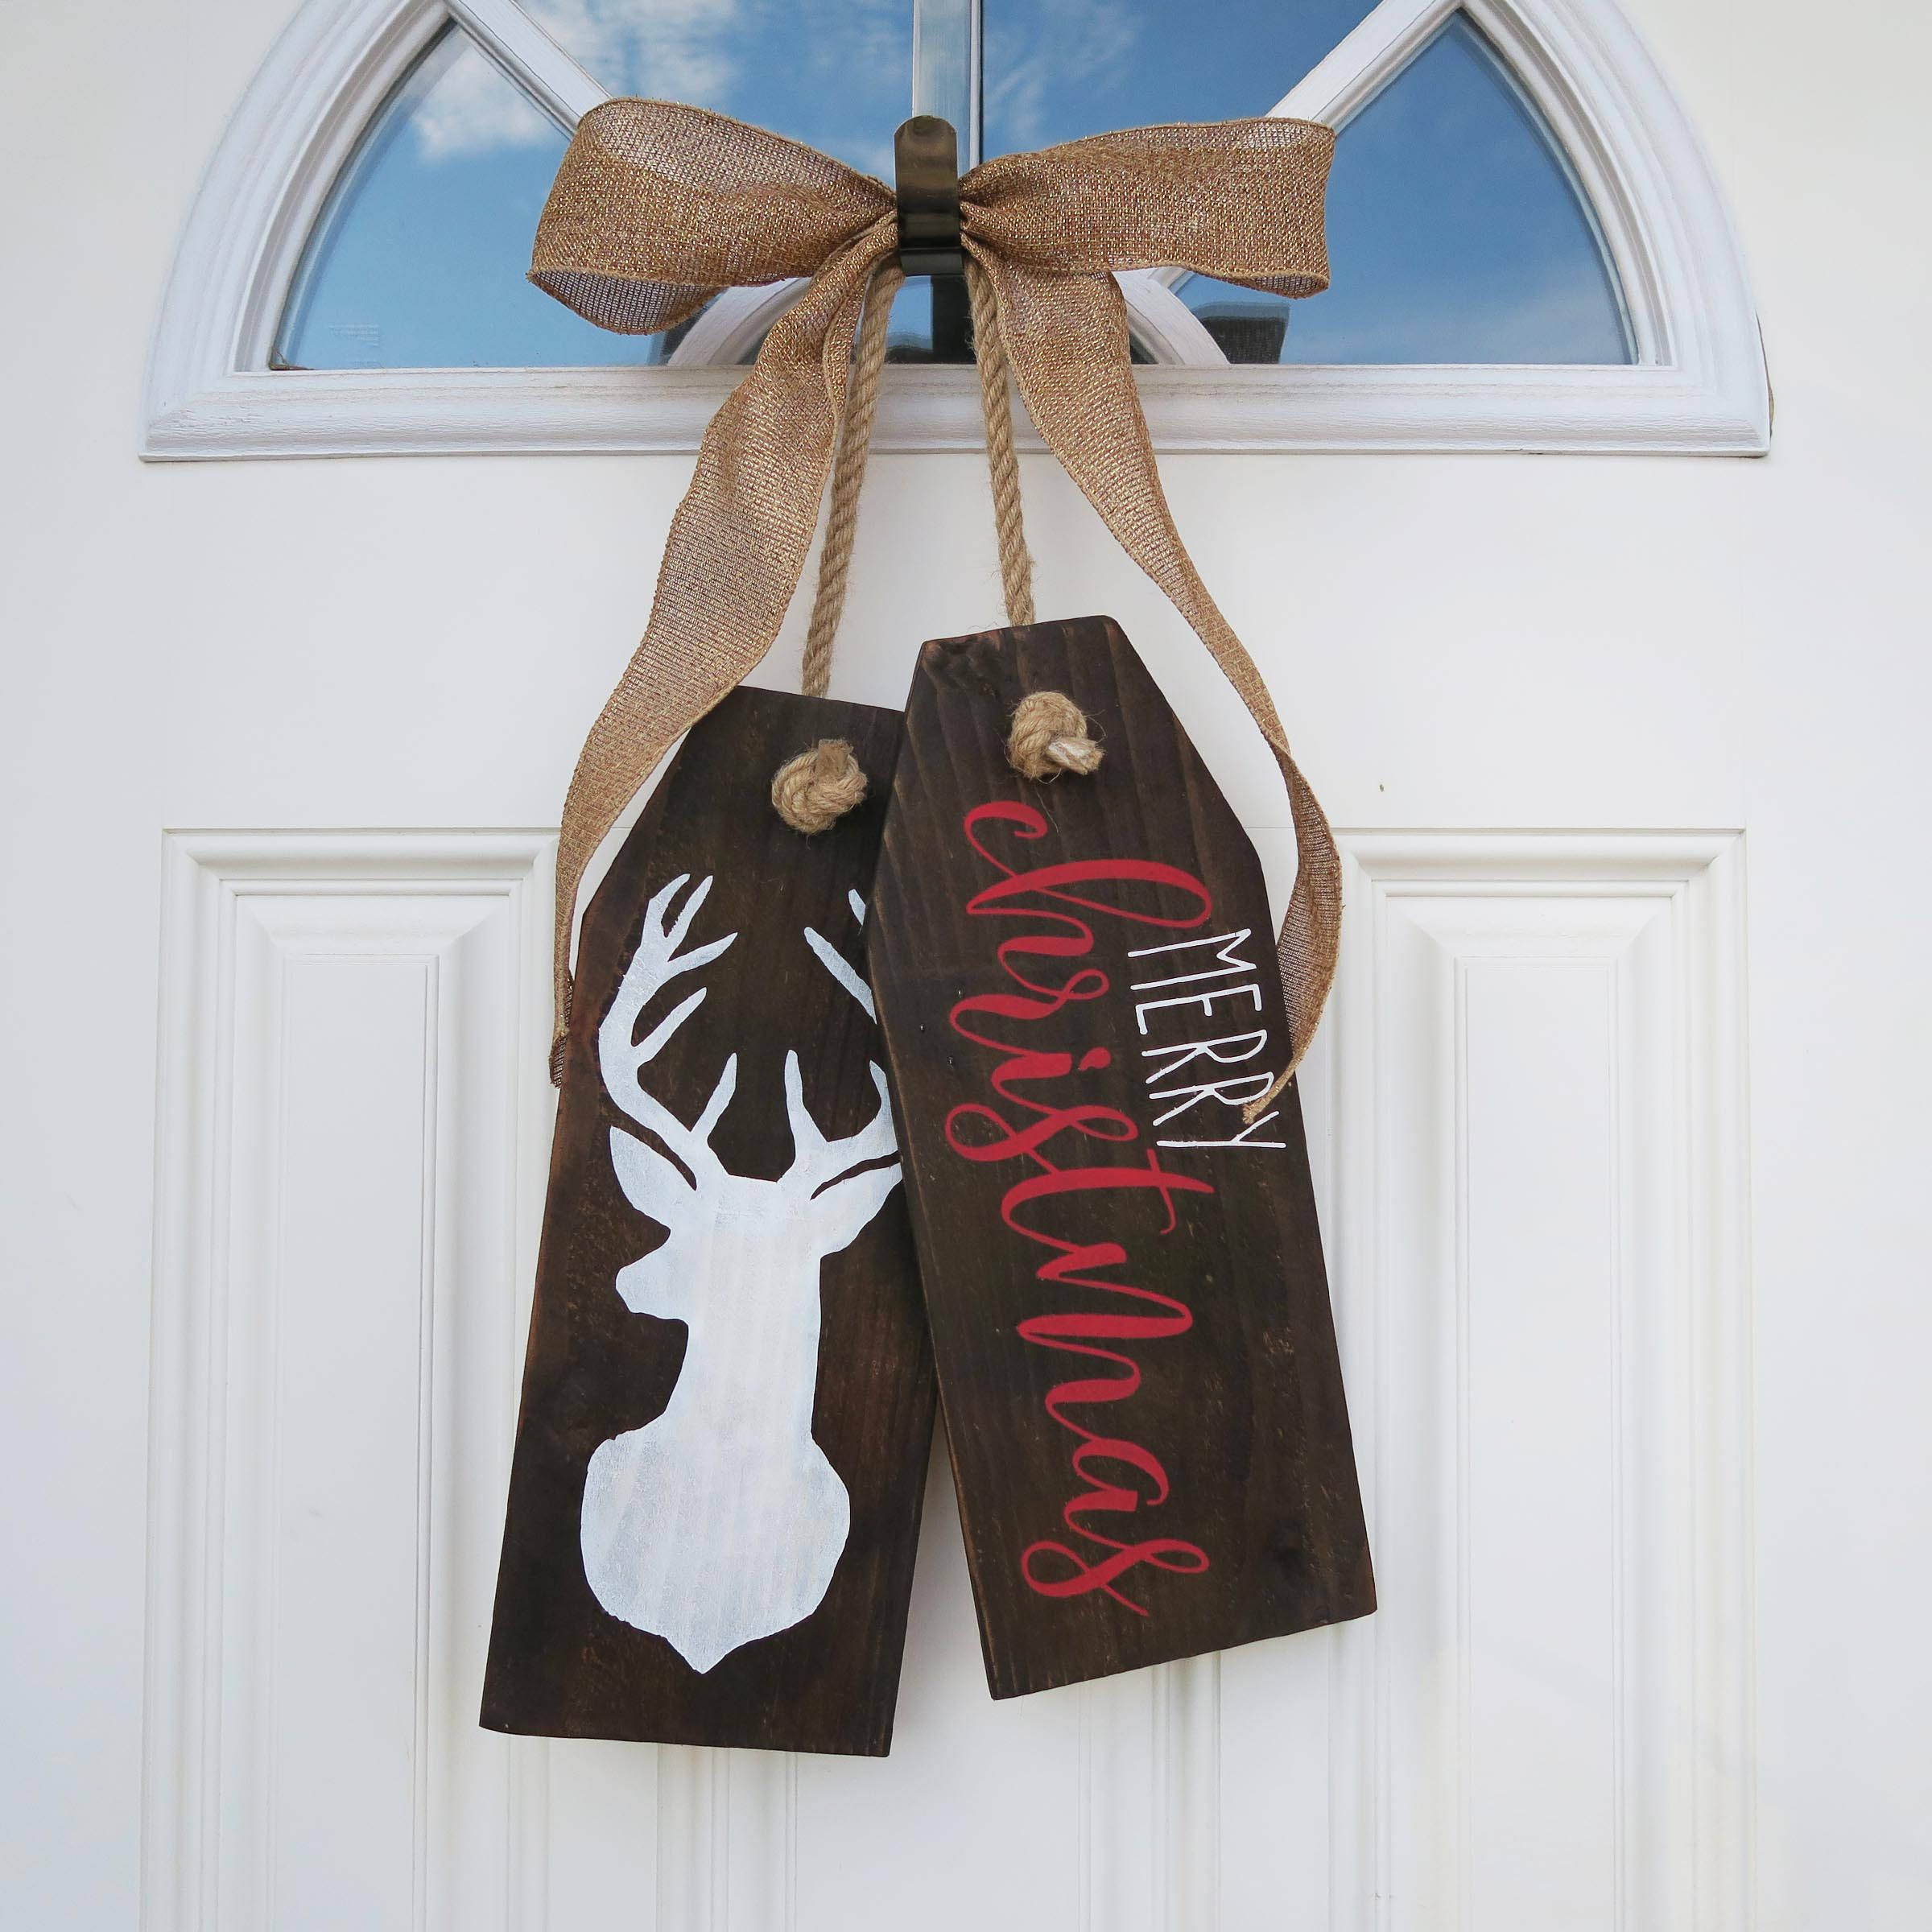 Merry Christmas Wooden Door Tag Door Hanger Christmas